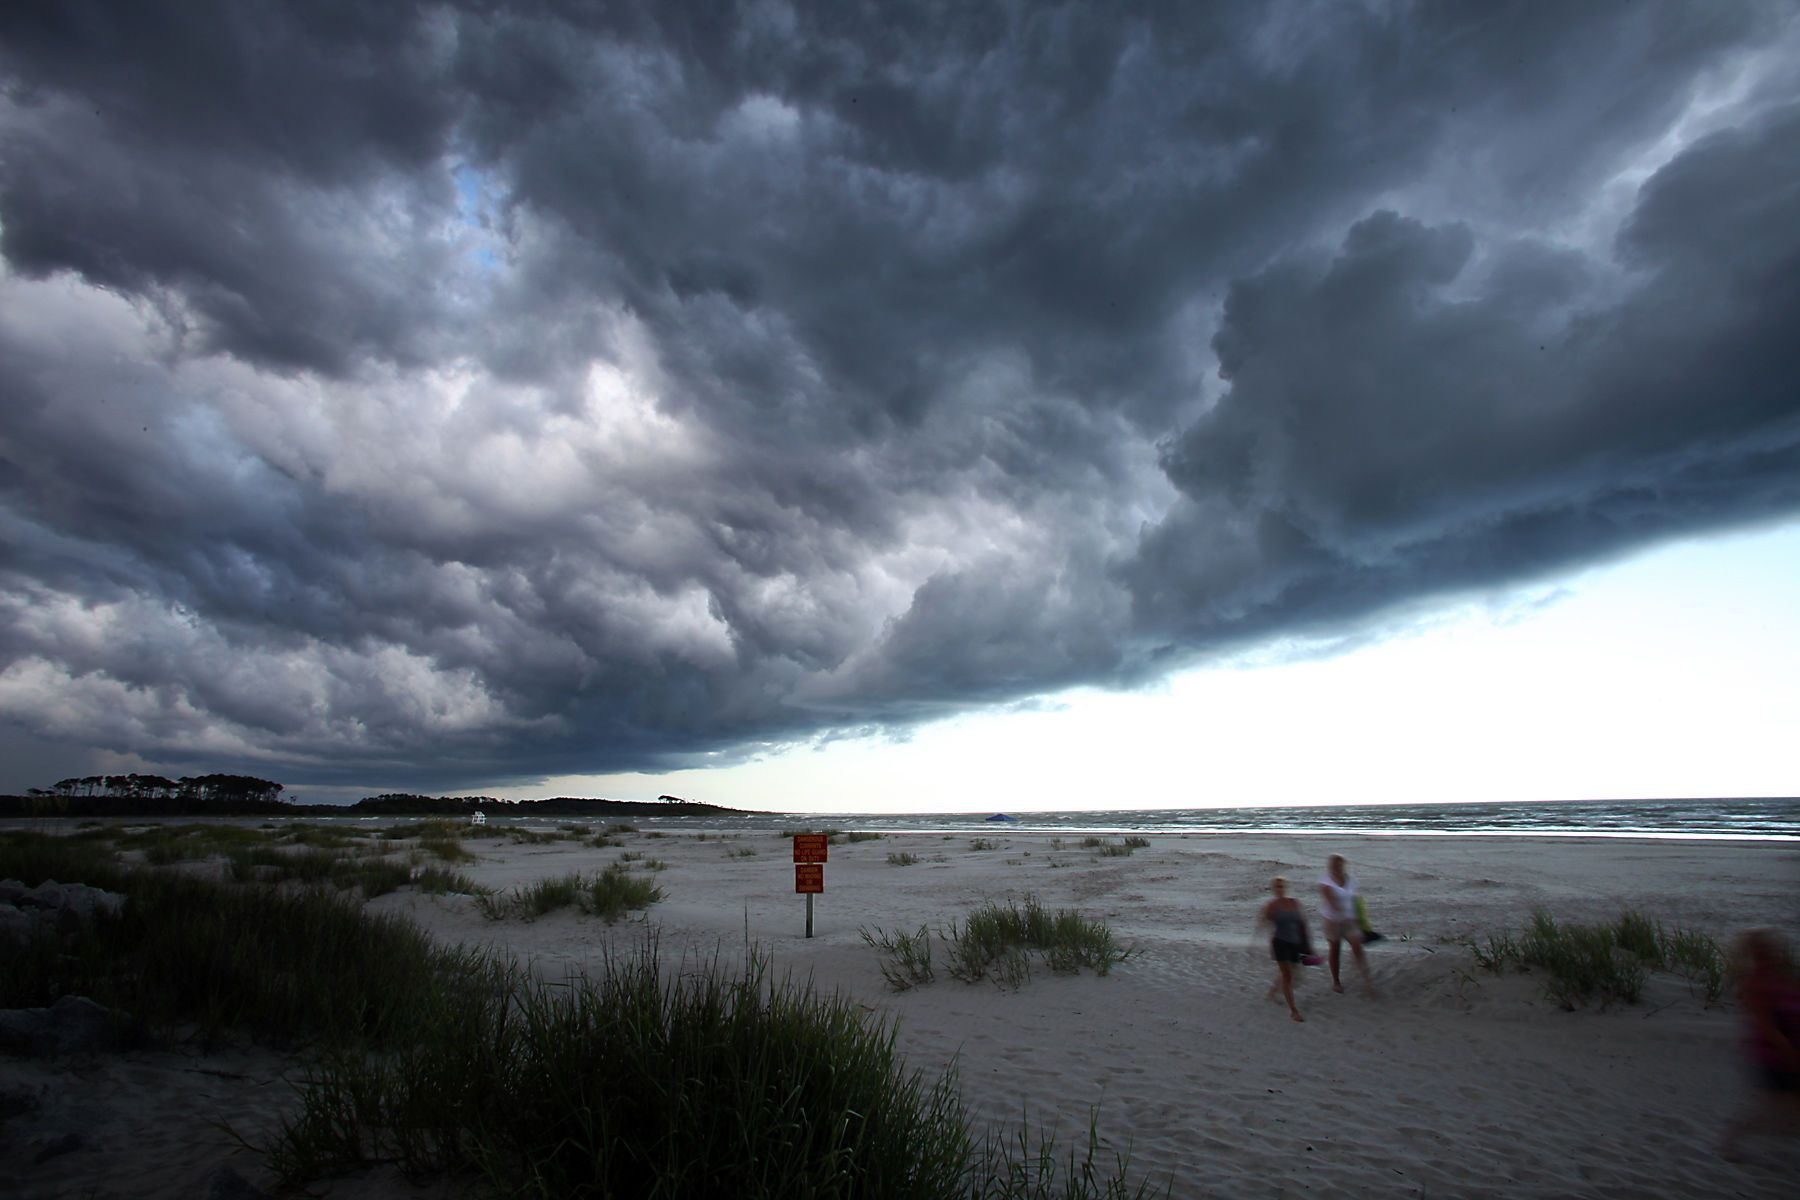 A storm moves fast over the Cherry Grove Point in North Myrtle Beach, S.C.